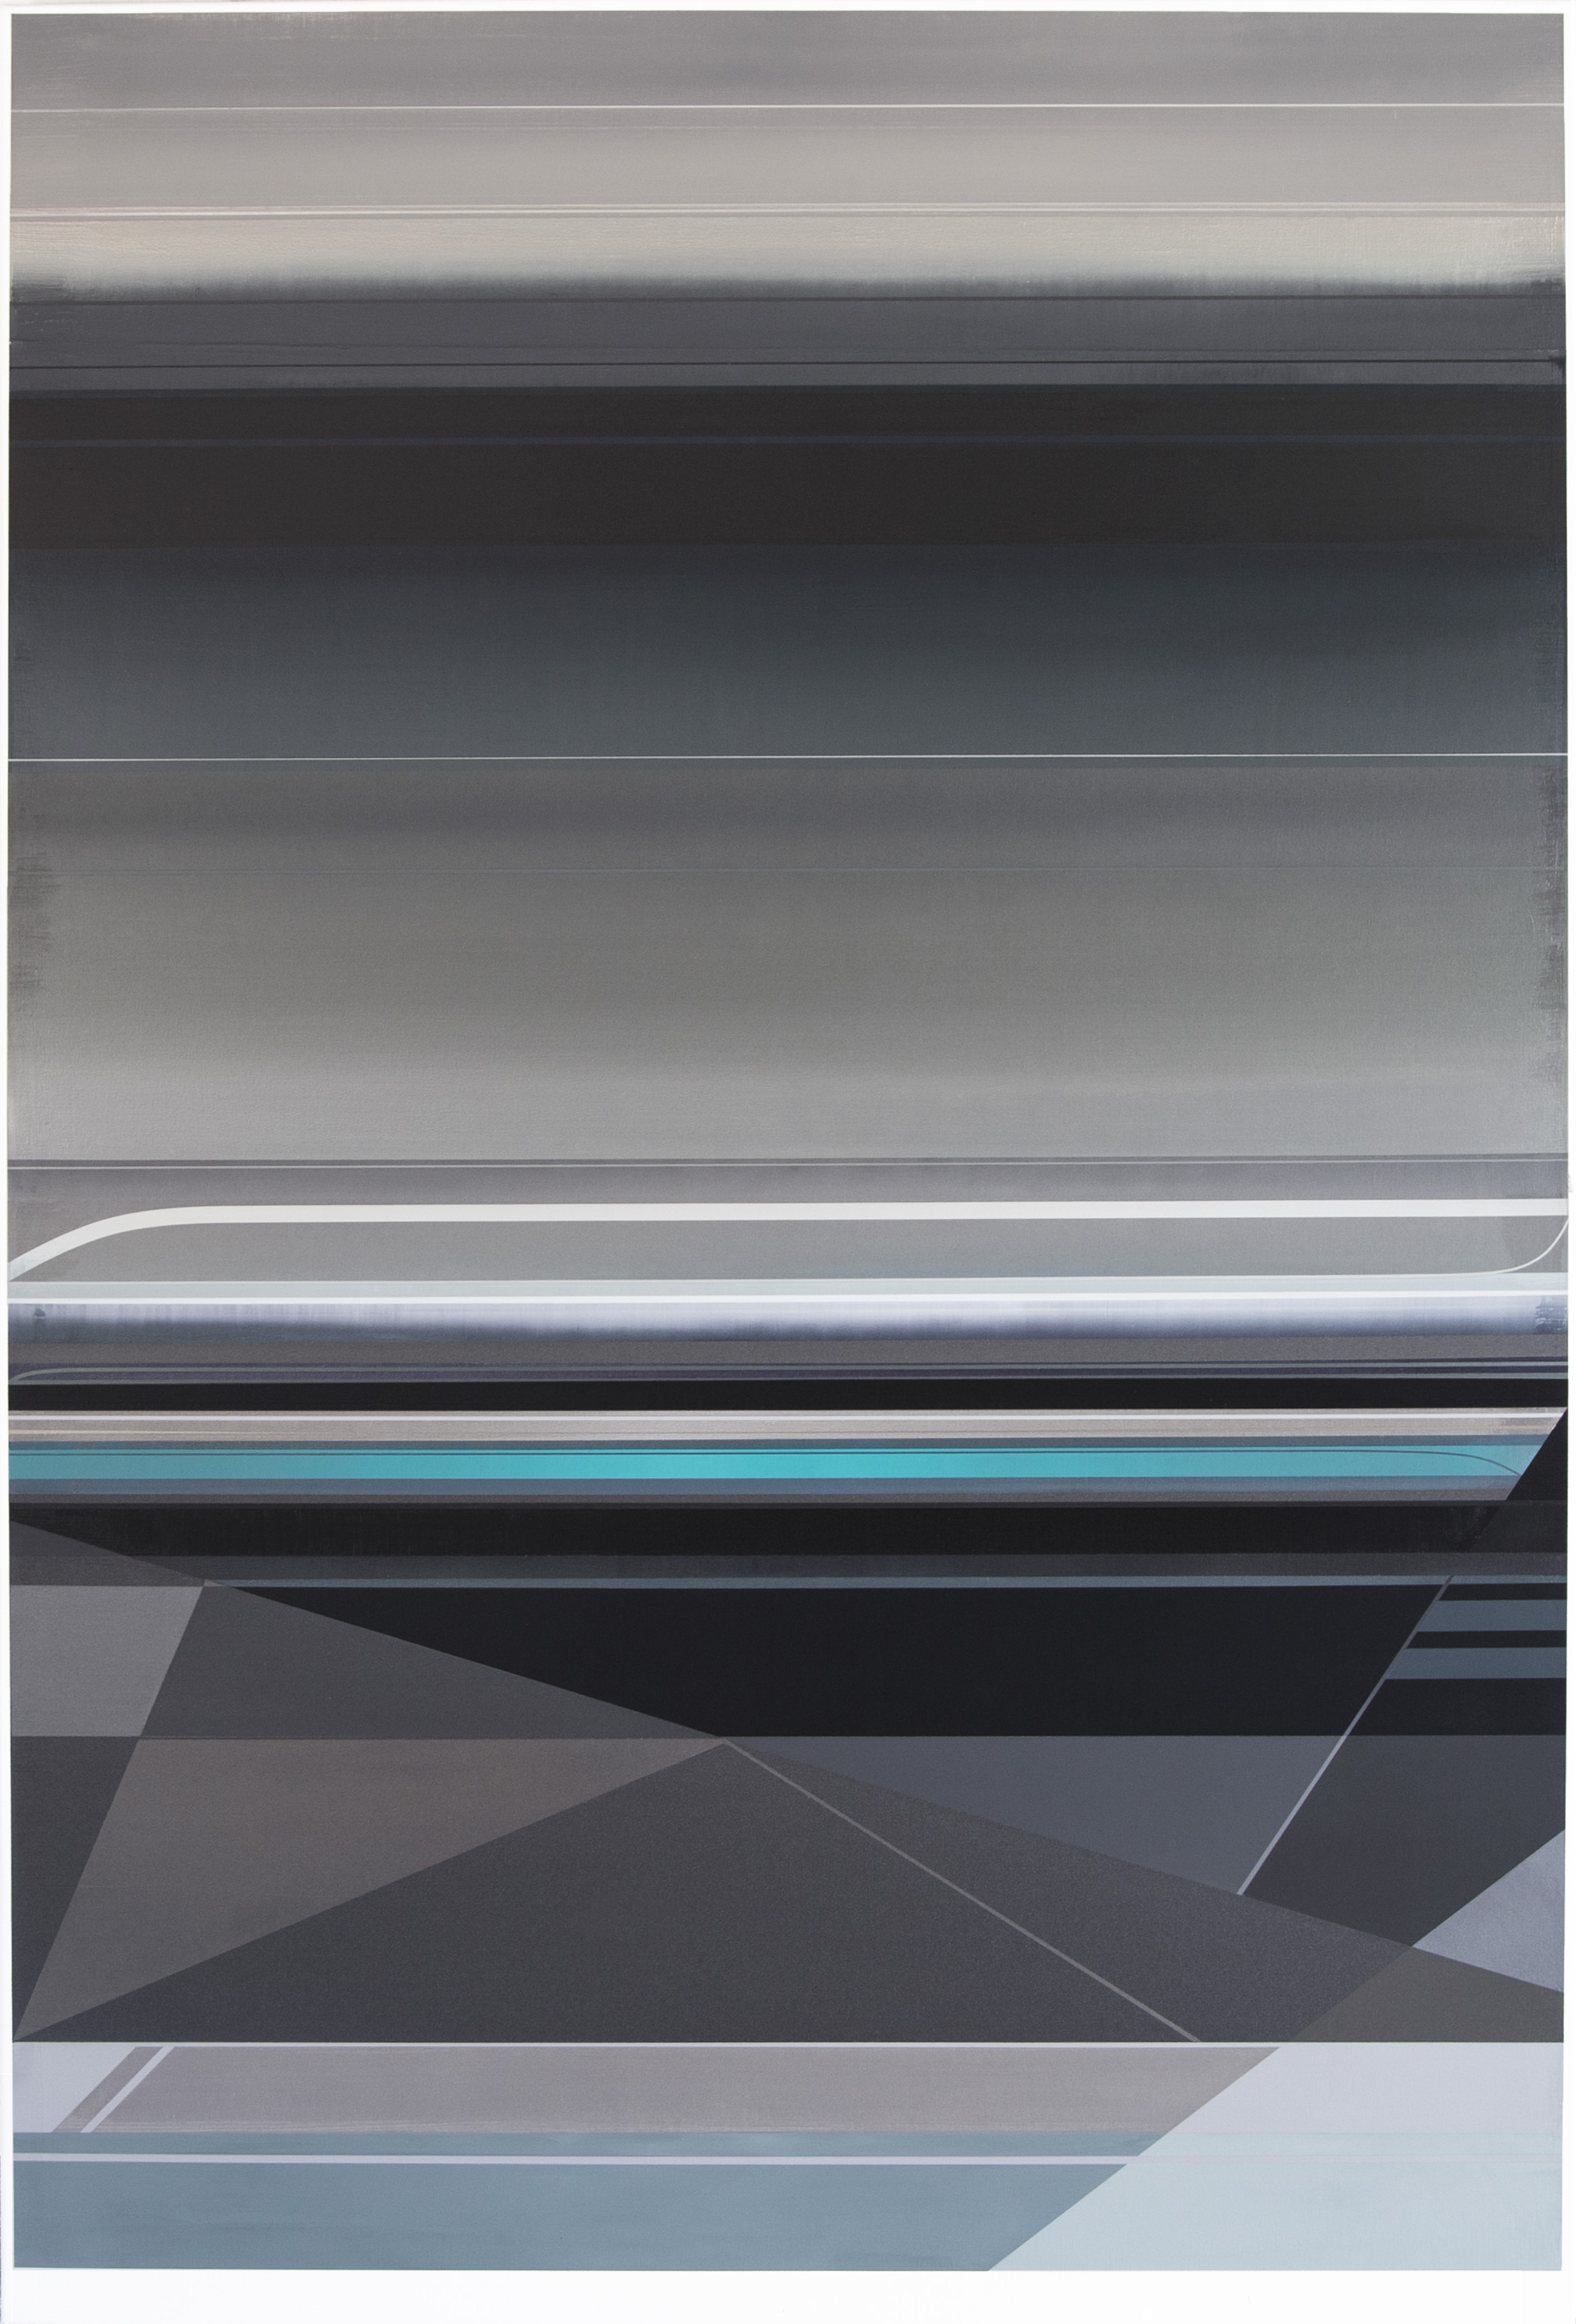 Hydrous, 72x48 inches